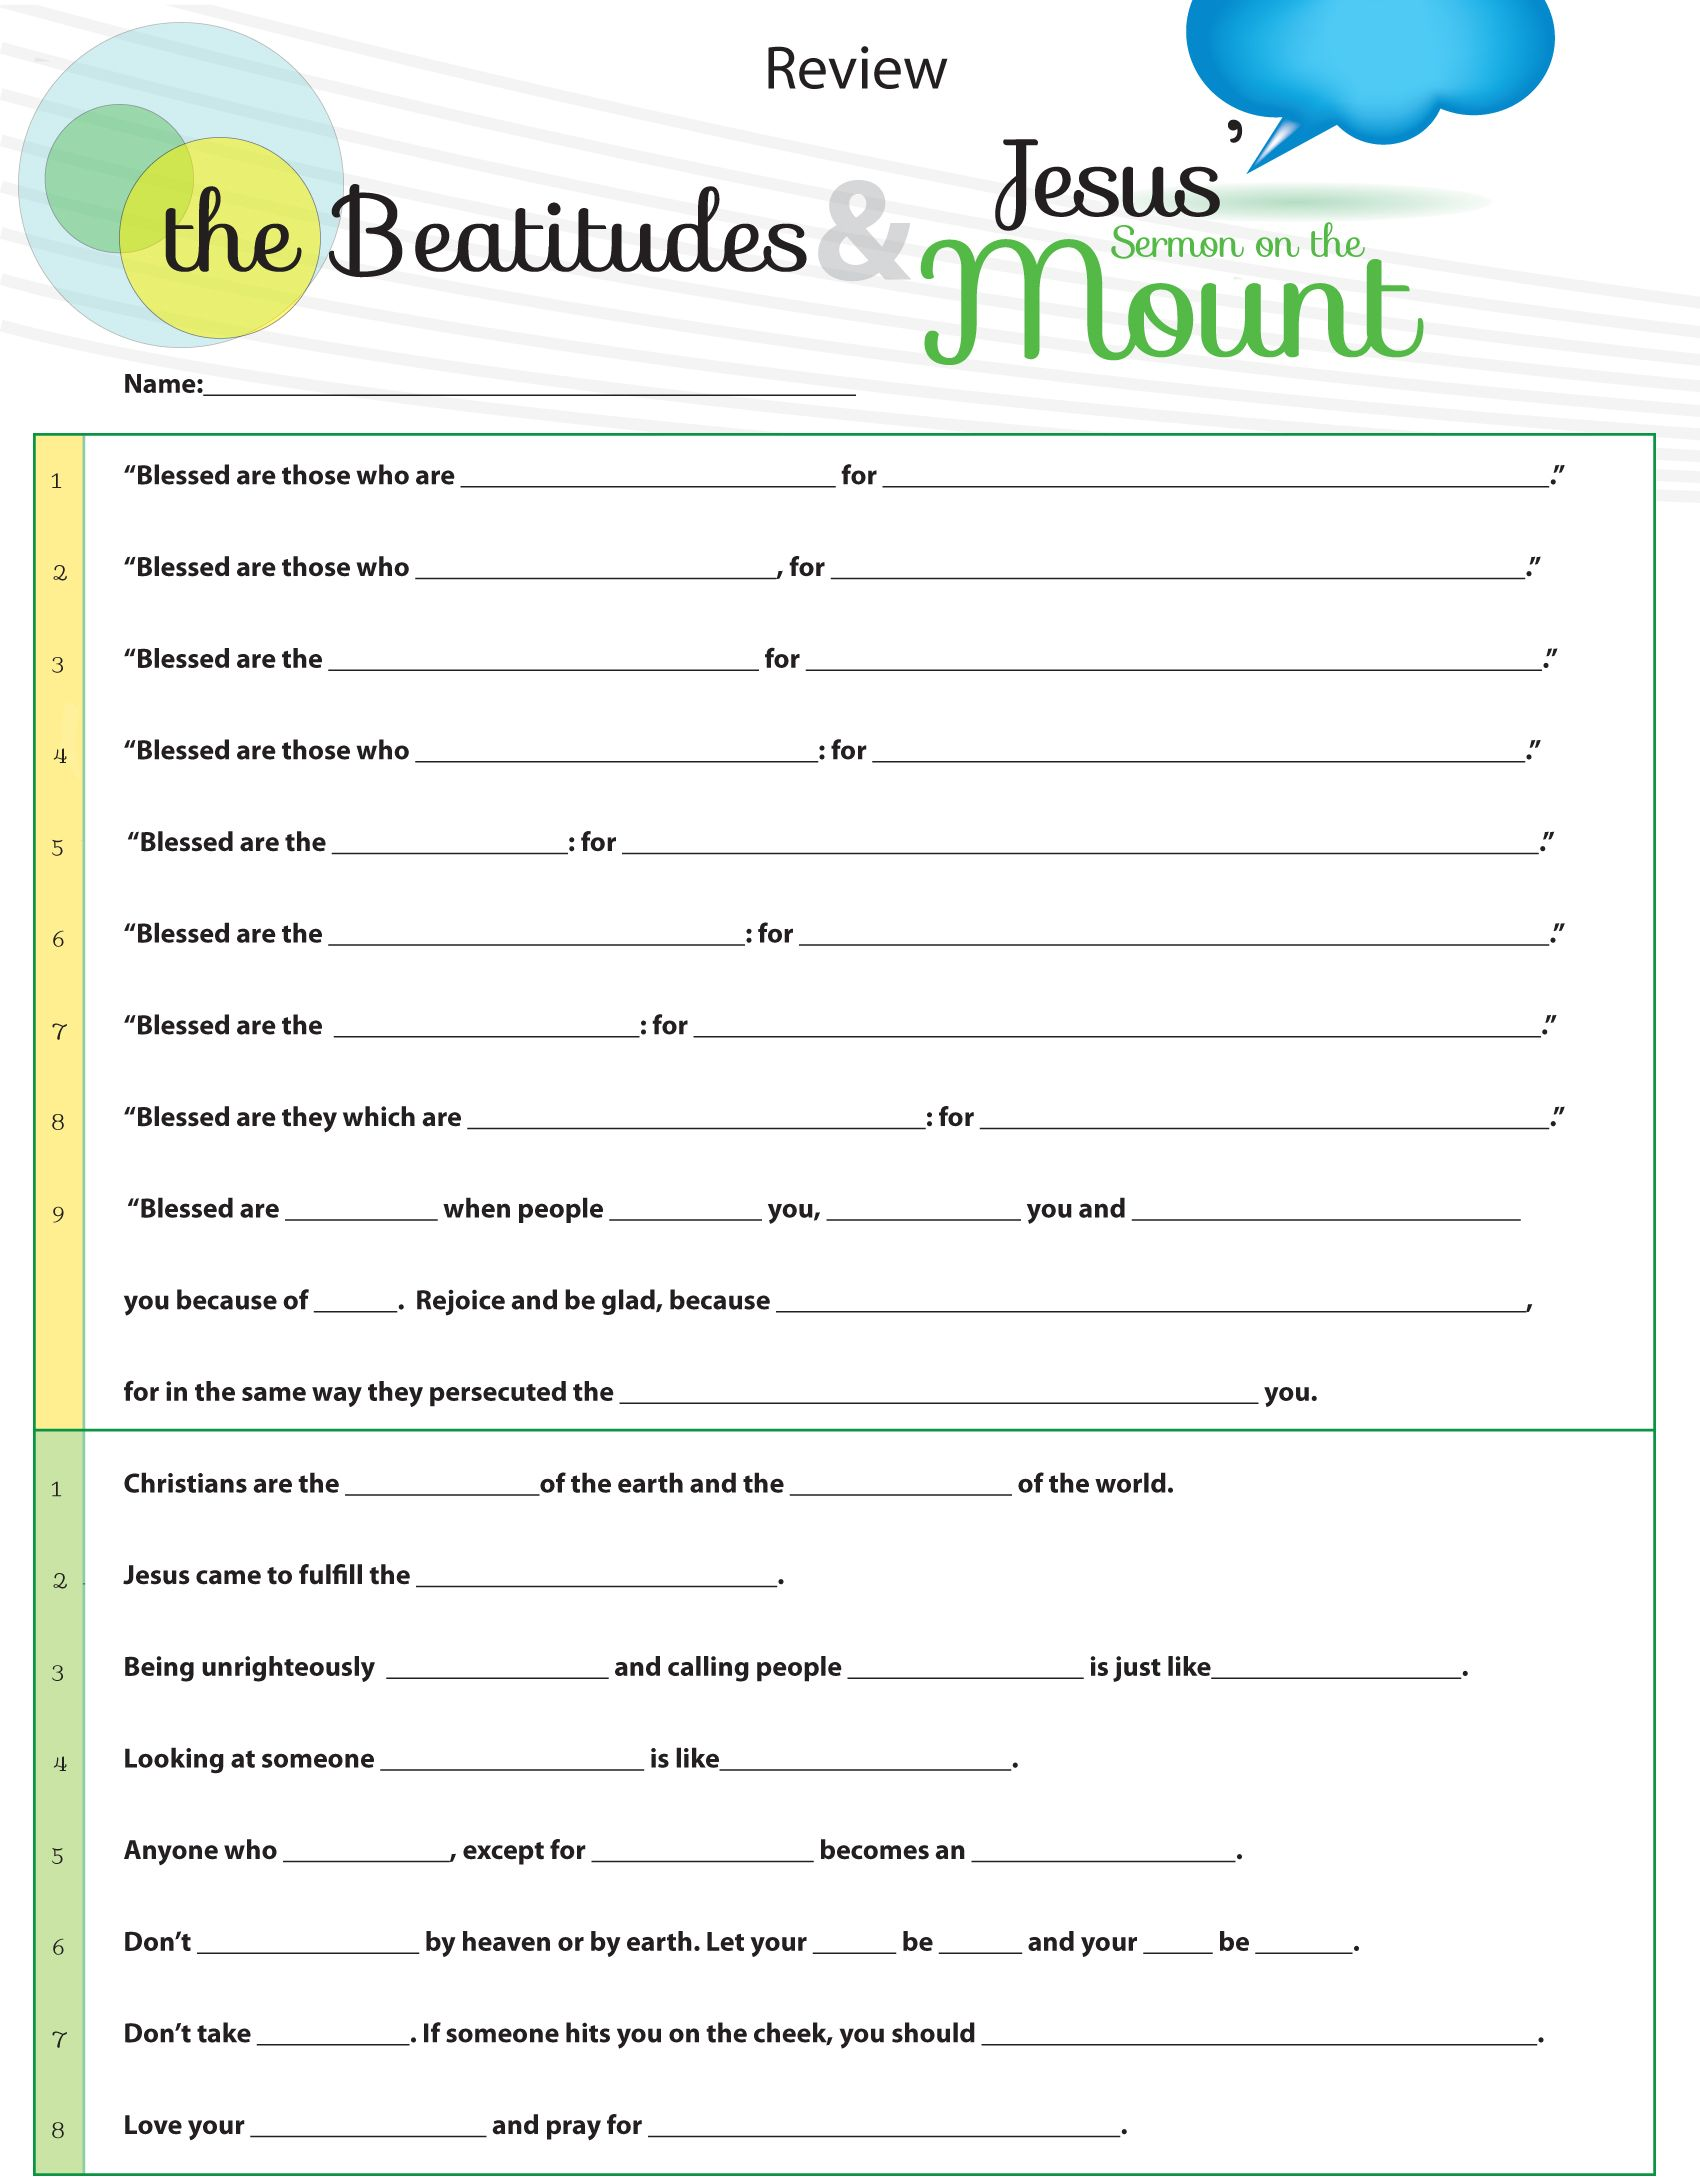 Printables Beatitudes Worksheet worksheet to teach the 3rd beatitude of christian life from jesus sermon on mount matthew chapter 5 overview with fill